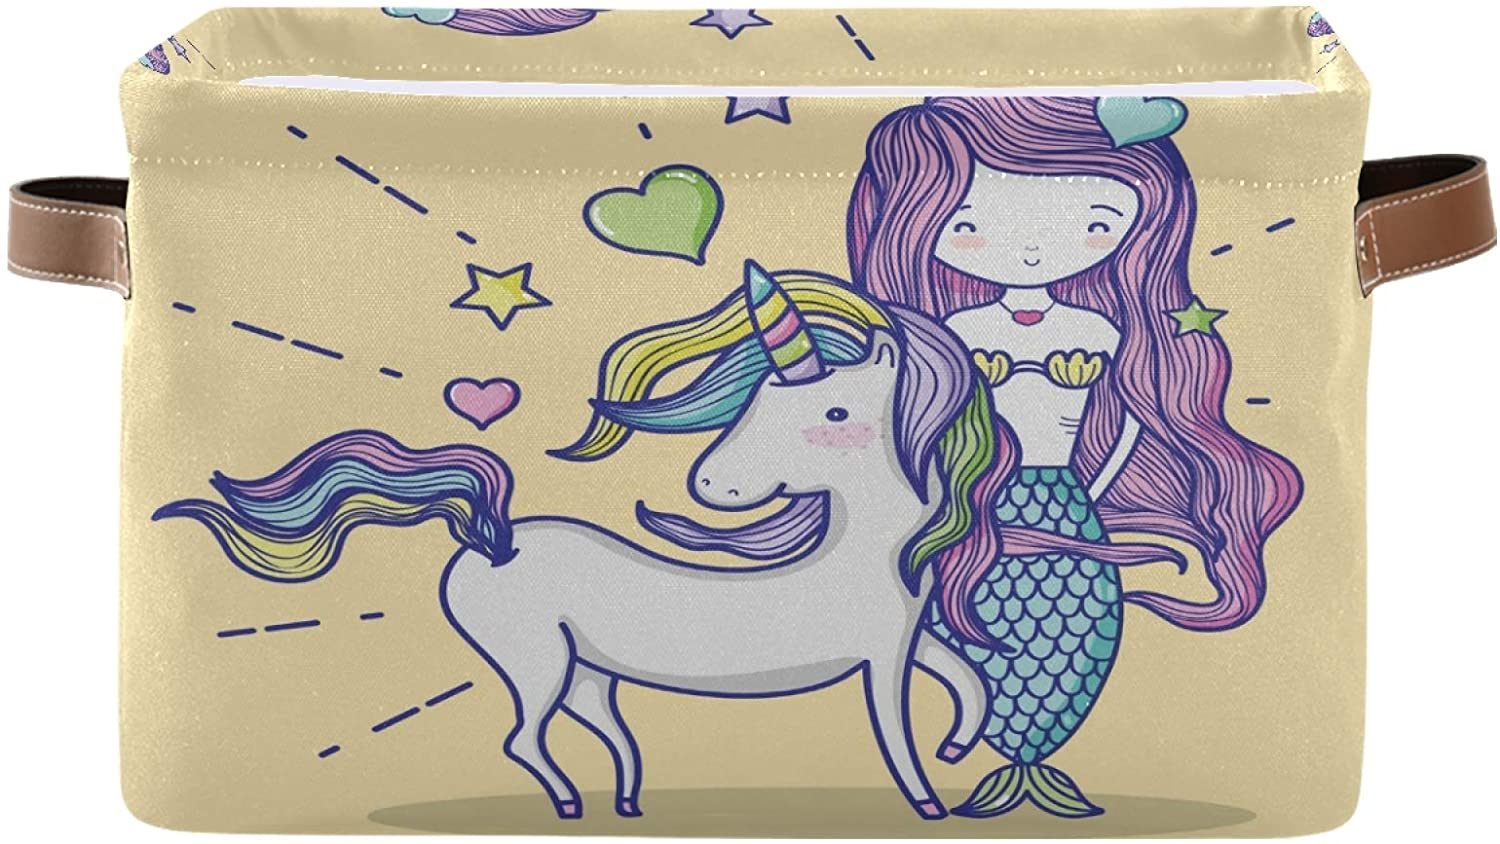 Ombra Storage Basket Cute Animal Unicorn Mermaid Storage Cube Box Durable Canvas Collapsible Toy Basket Organizer Bin with Handles for Shelf Closet Bedroom Home Office